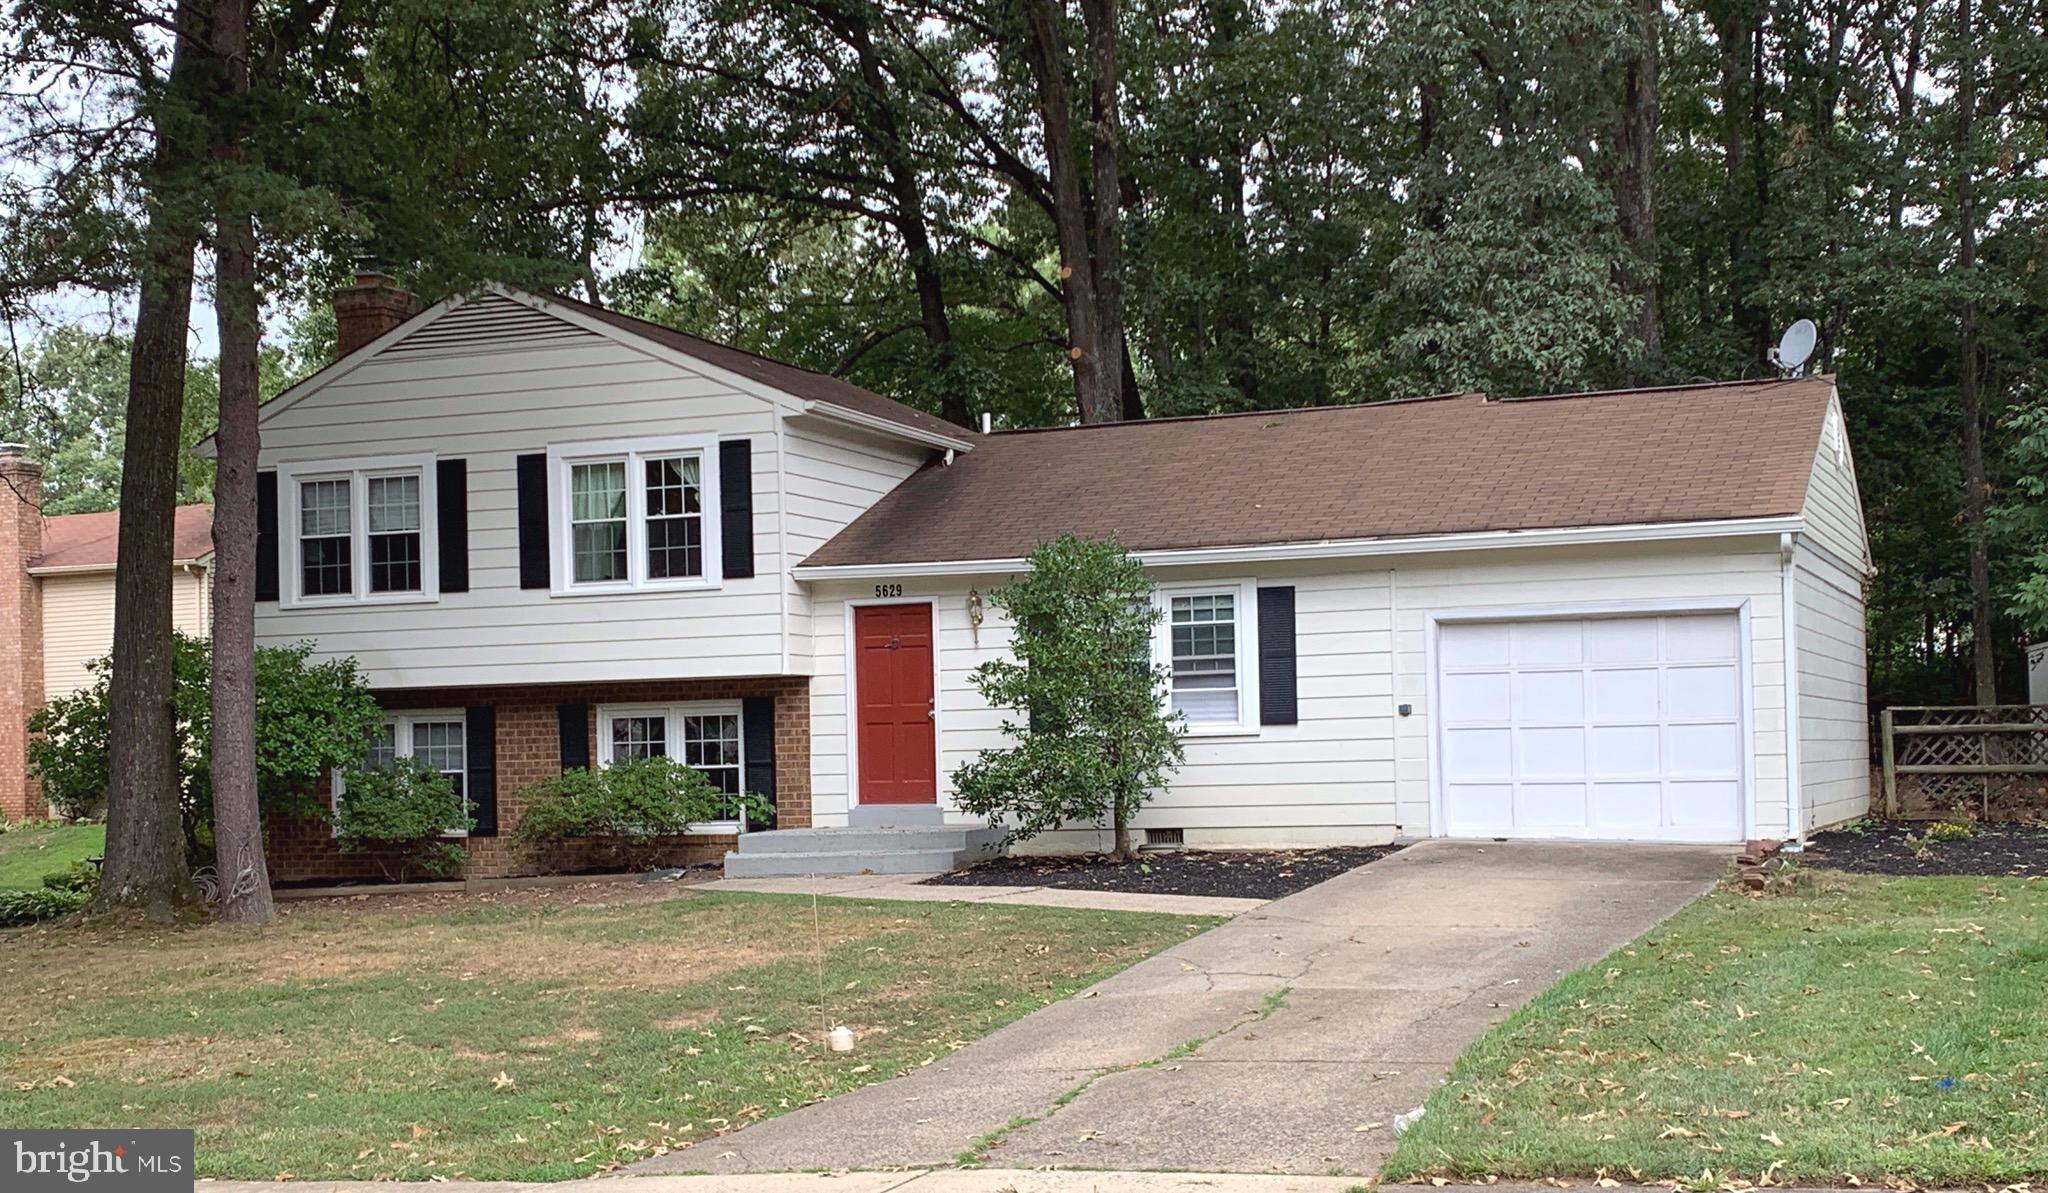 Great location in Signal Hill and wonder Split level home w/garage. This home has a Lower level rec room w/FP, bedroom, Deck off dining room, and a cul de sac. Close to schools, shopping center and VRE.